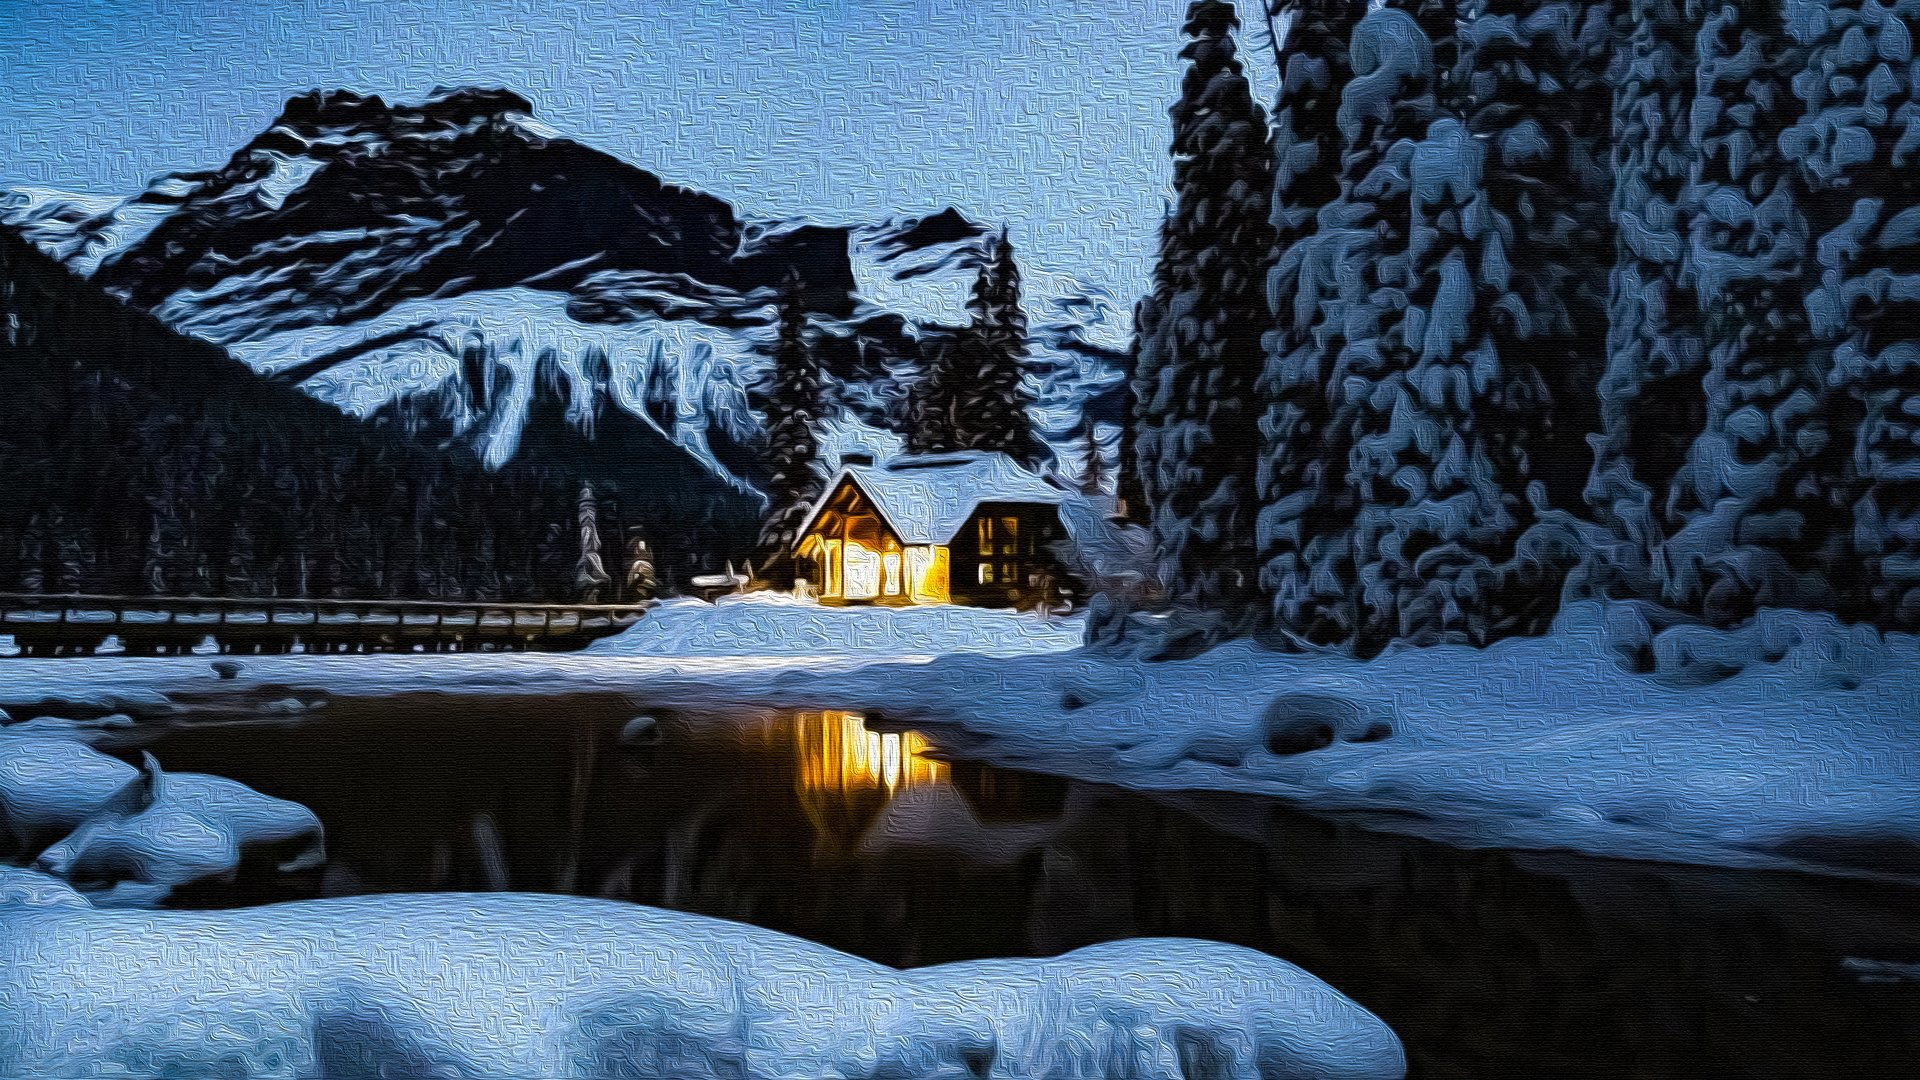 Winter cabin oil on canvas 4k ultra hd wallpaper background image 3840x2160 id 934369 - Ultra 4k background images ...